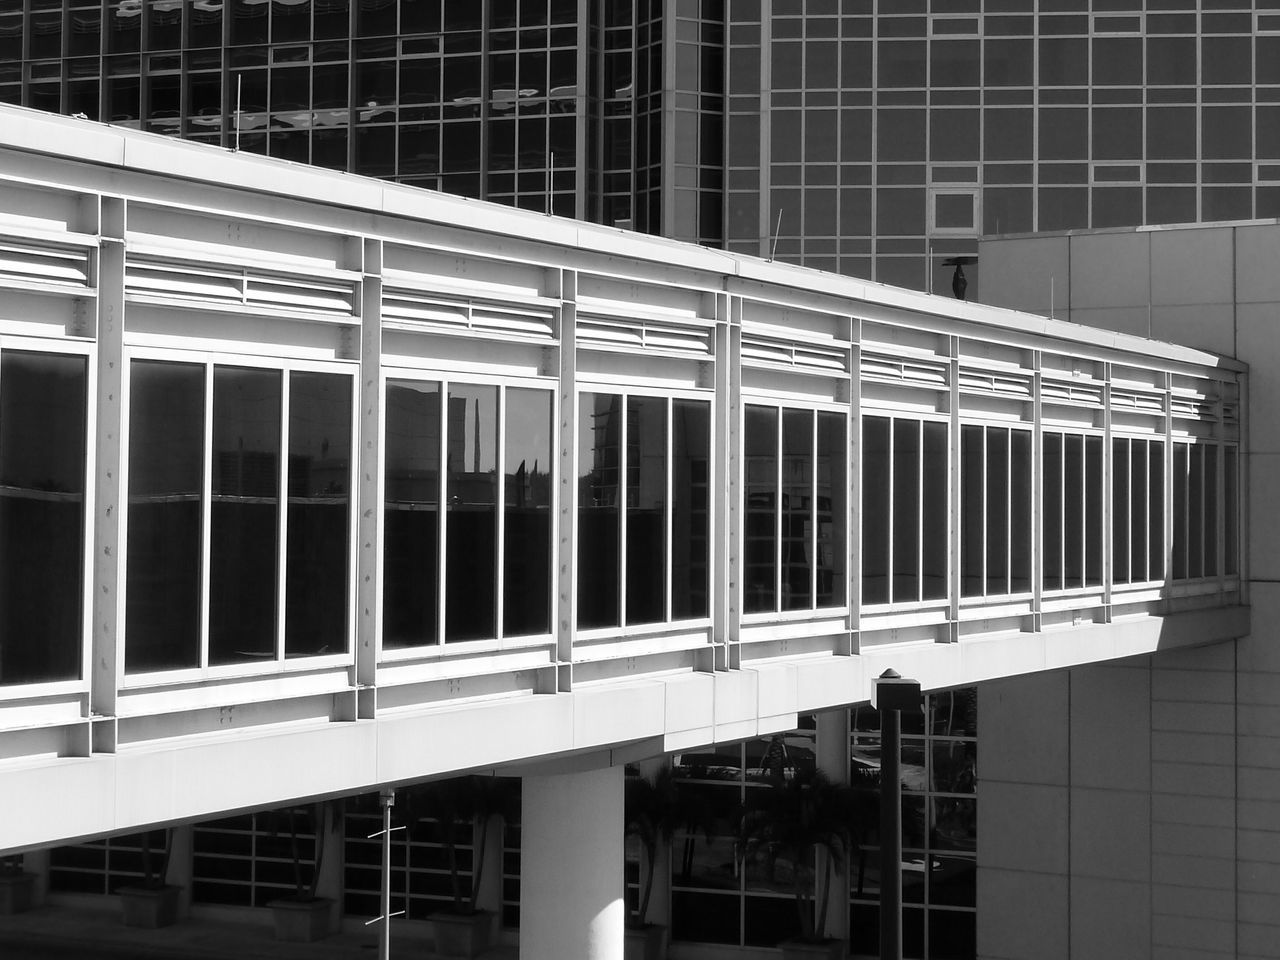 Building Bridge Building Exterior Architecture Structure Angled View Perspective Monochrome Photography